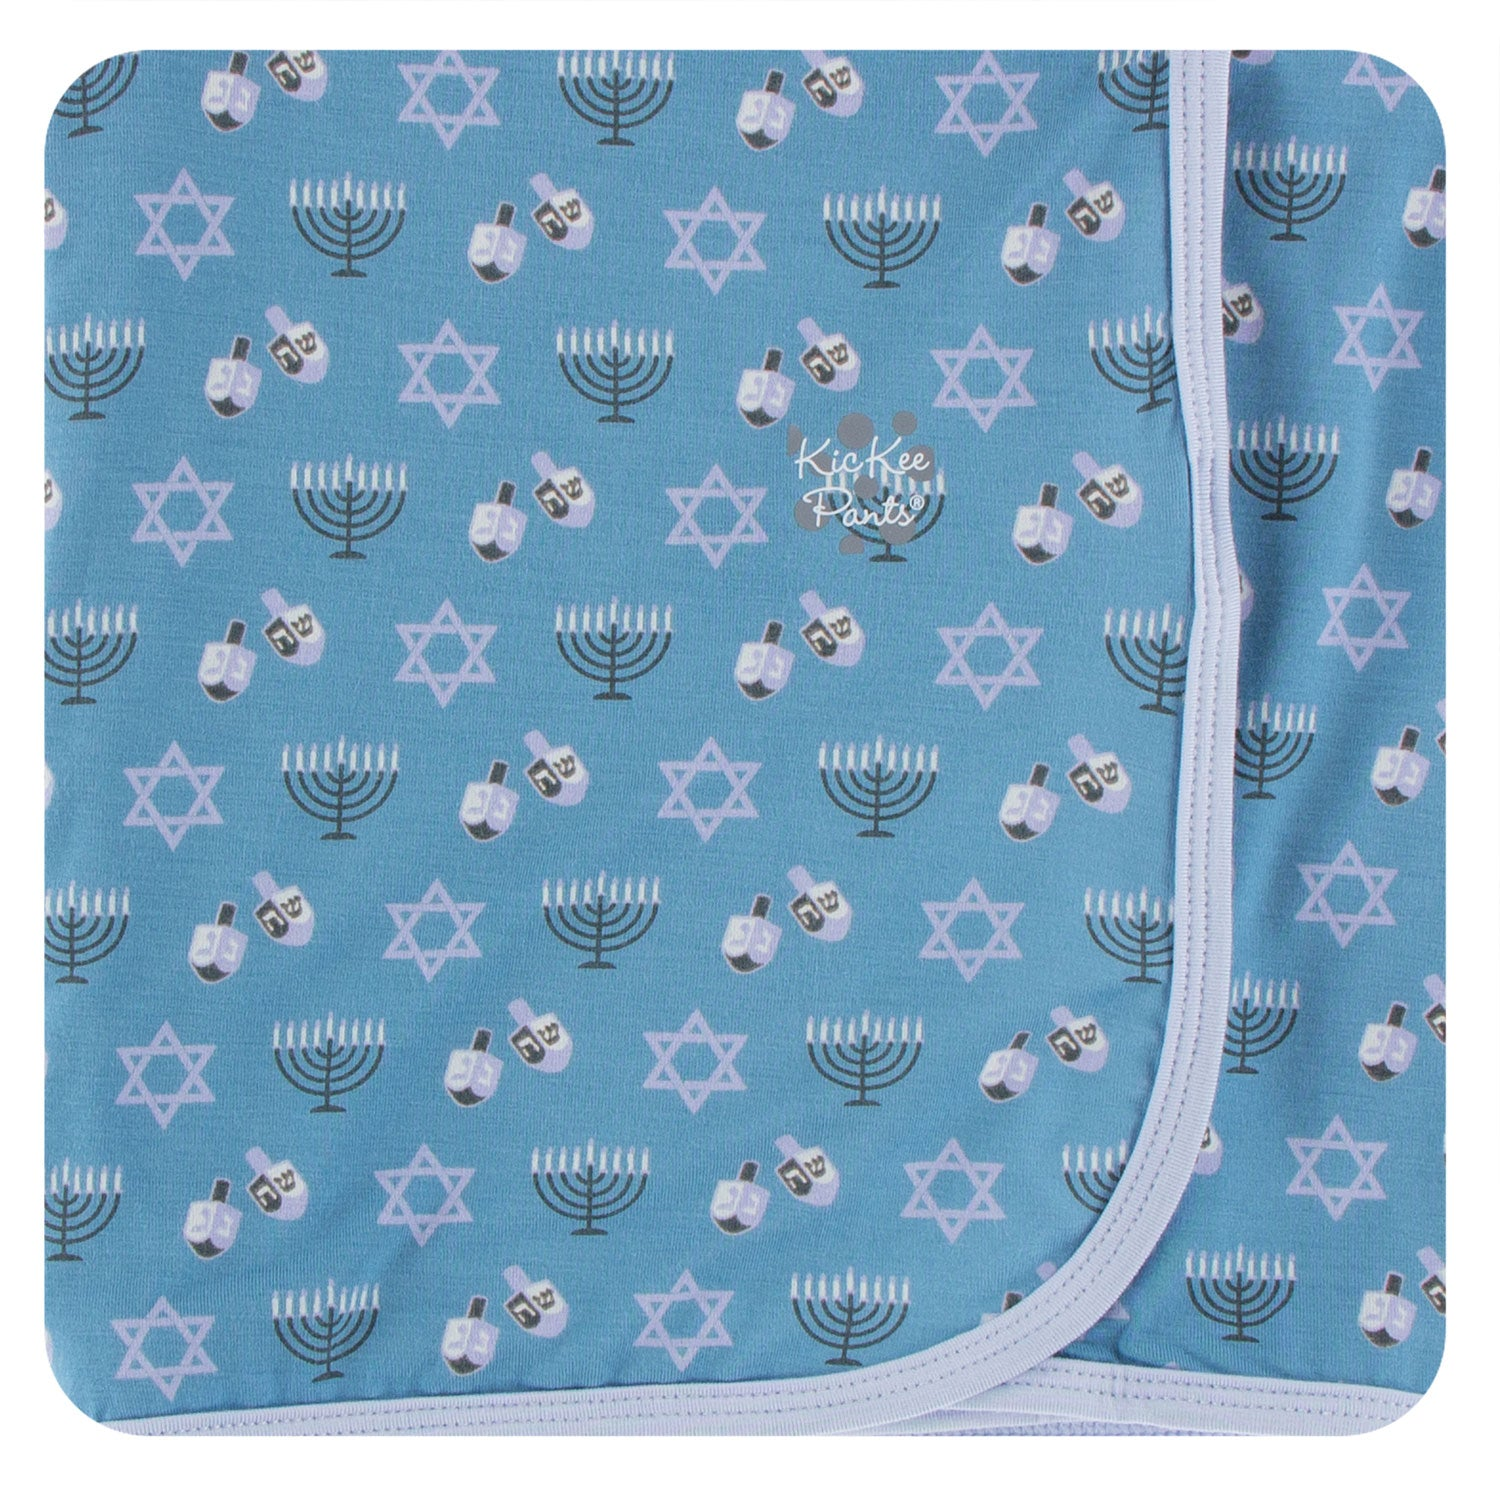 KicKee Pants Swaddle Blanket Blue Moon Hanukkah